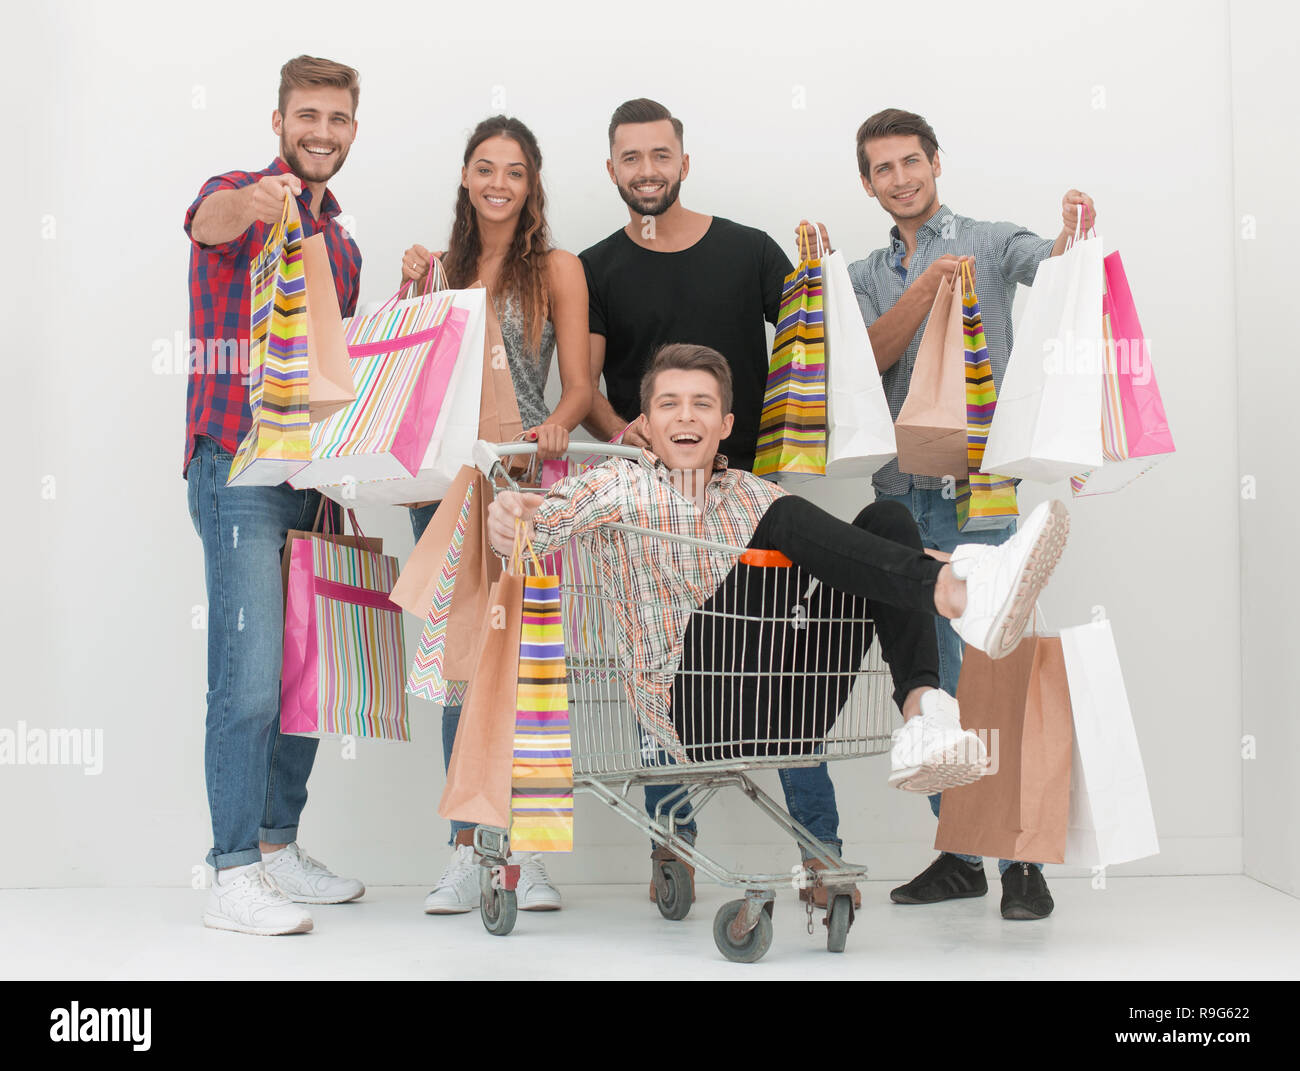 happy group of young people with shopping bags - Stock Image